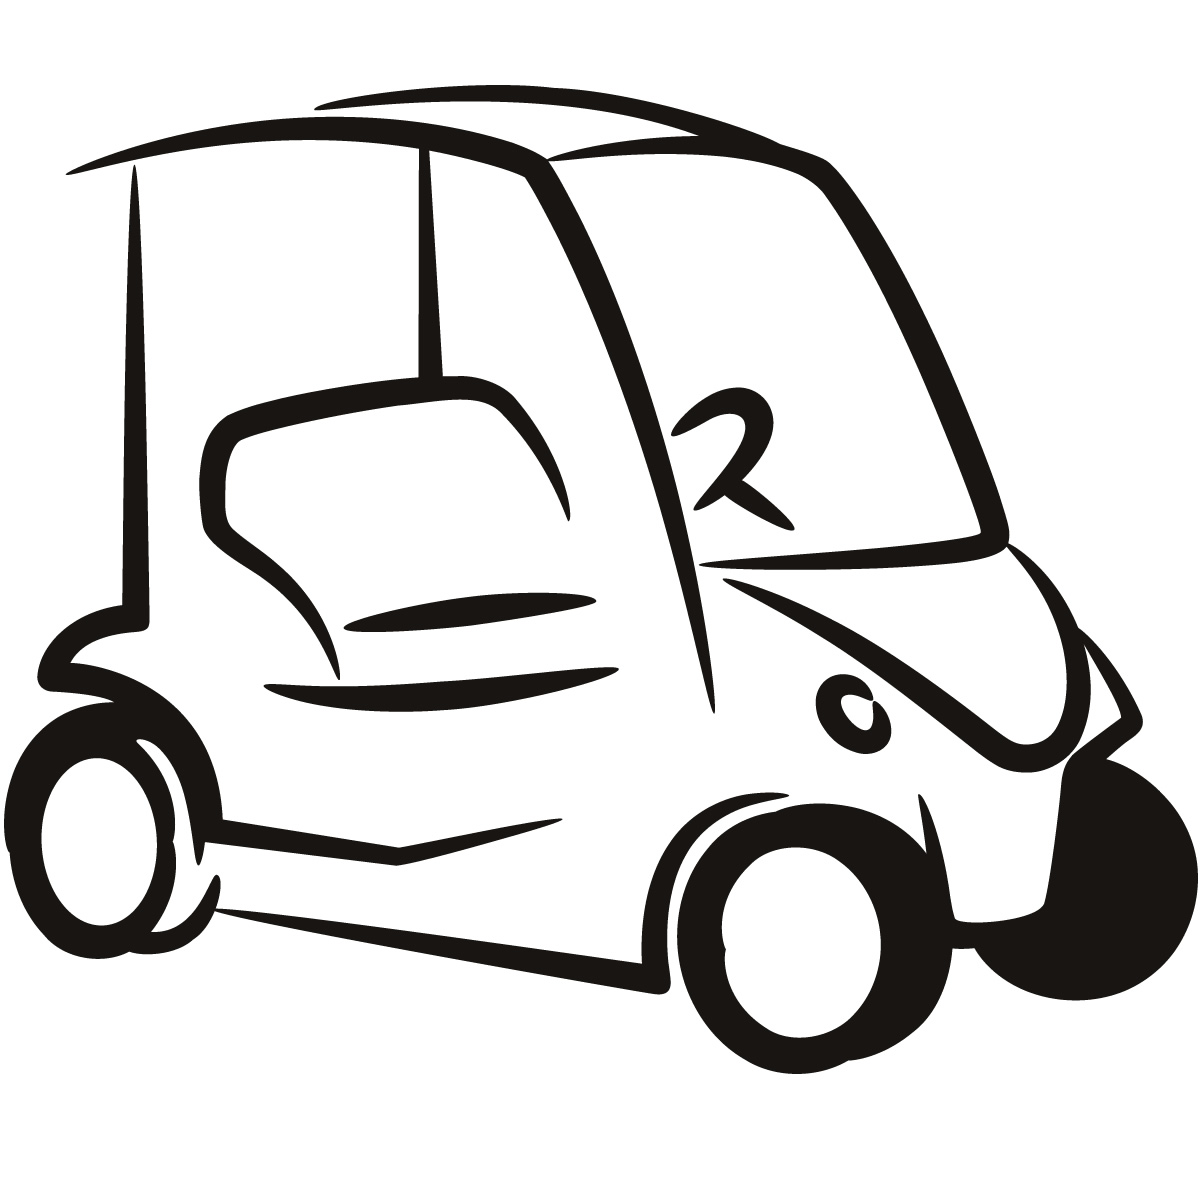 Auto Rickshaw Coloring Page 1d3426 likewise Pics Of Stressed Out People in addition Drivers ed together with Minisprintracing furthermore starwarsholidayspecial. on new driver cartoon